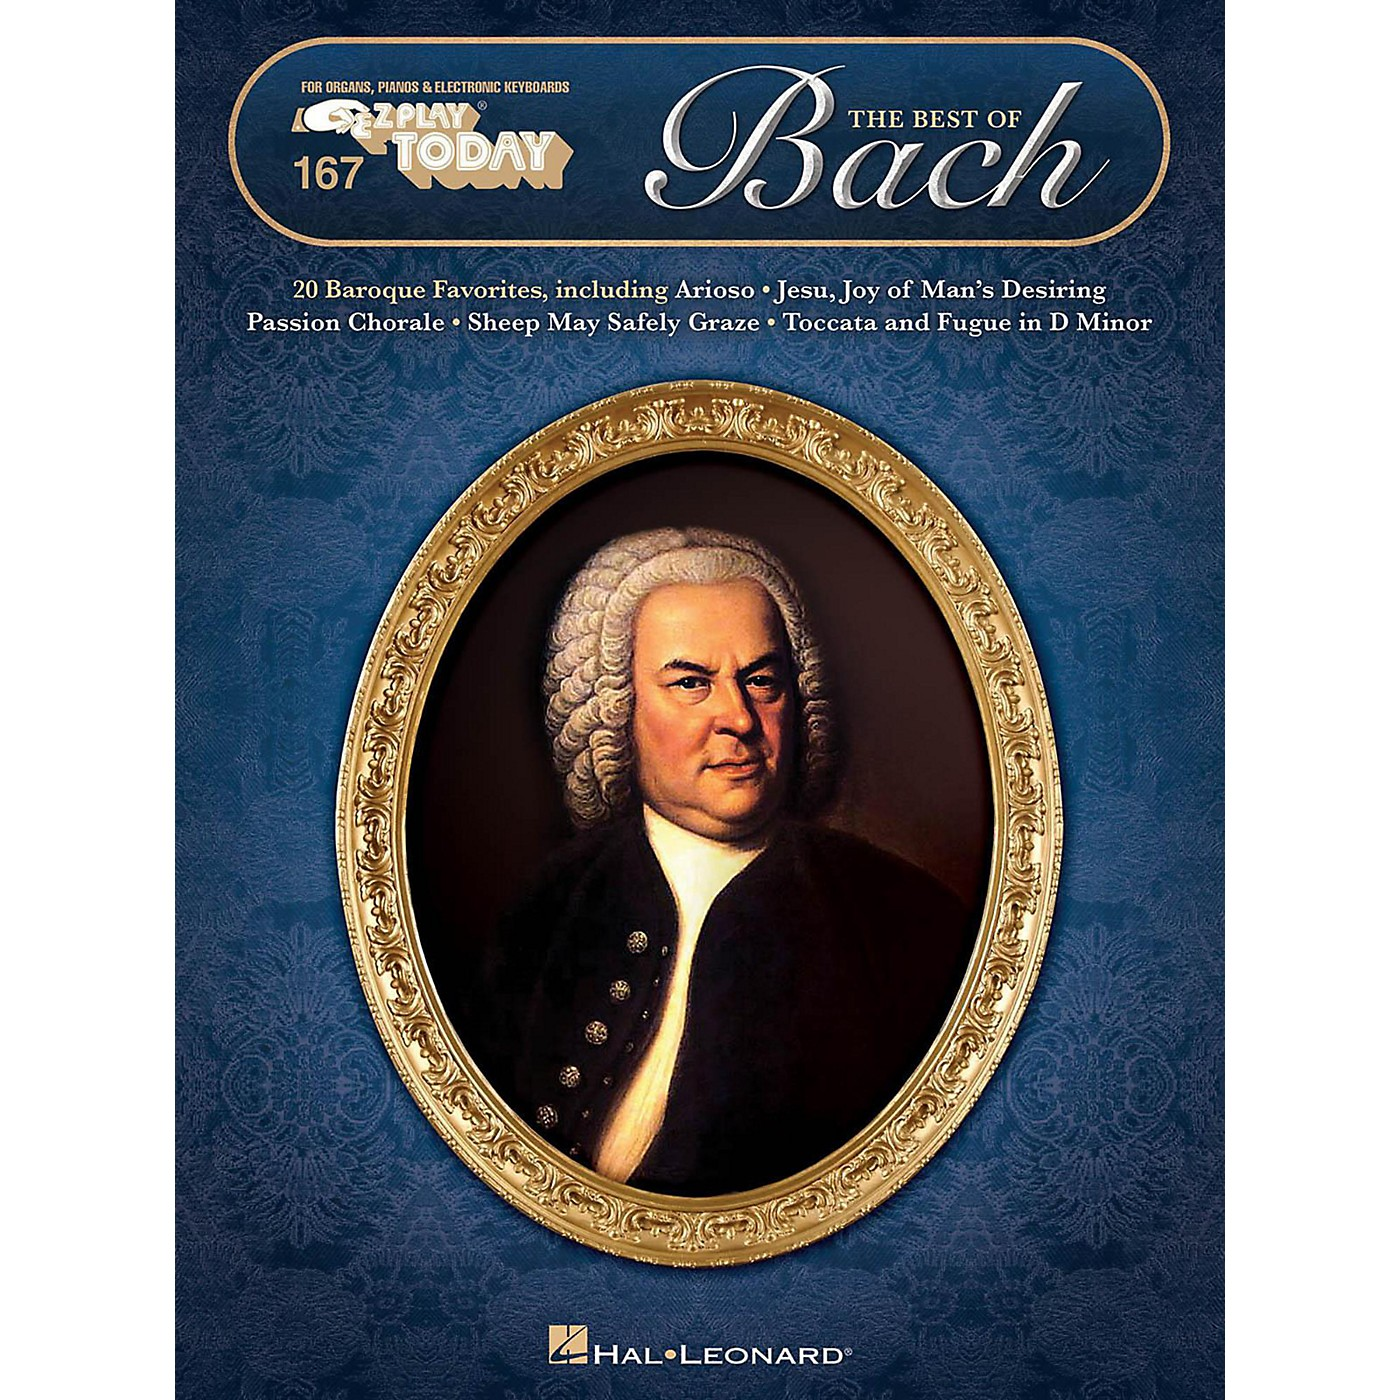 Hal Leonard The Best Of Bach E-Z Play Today Volume 167 thumbnail